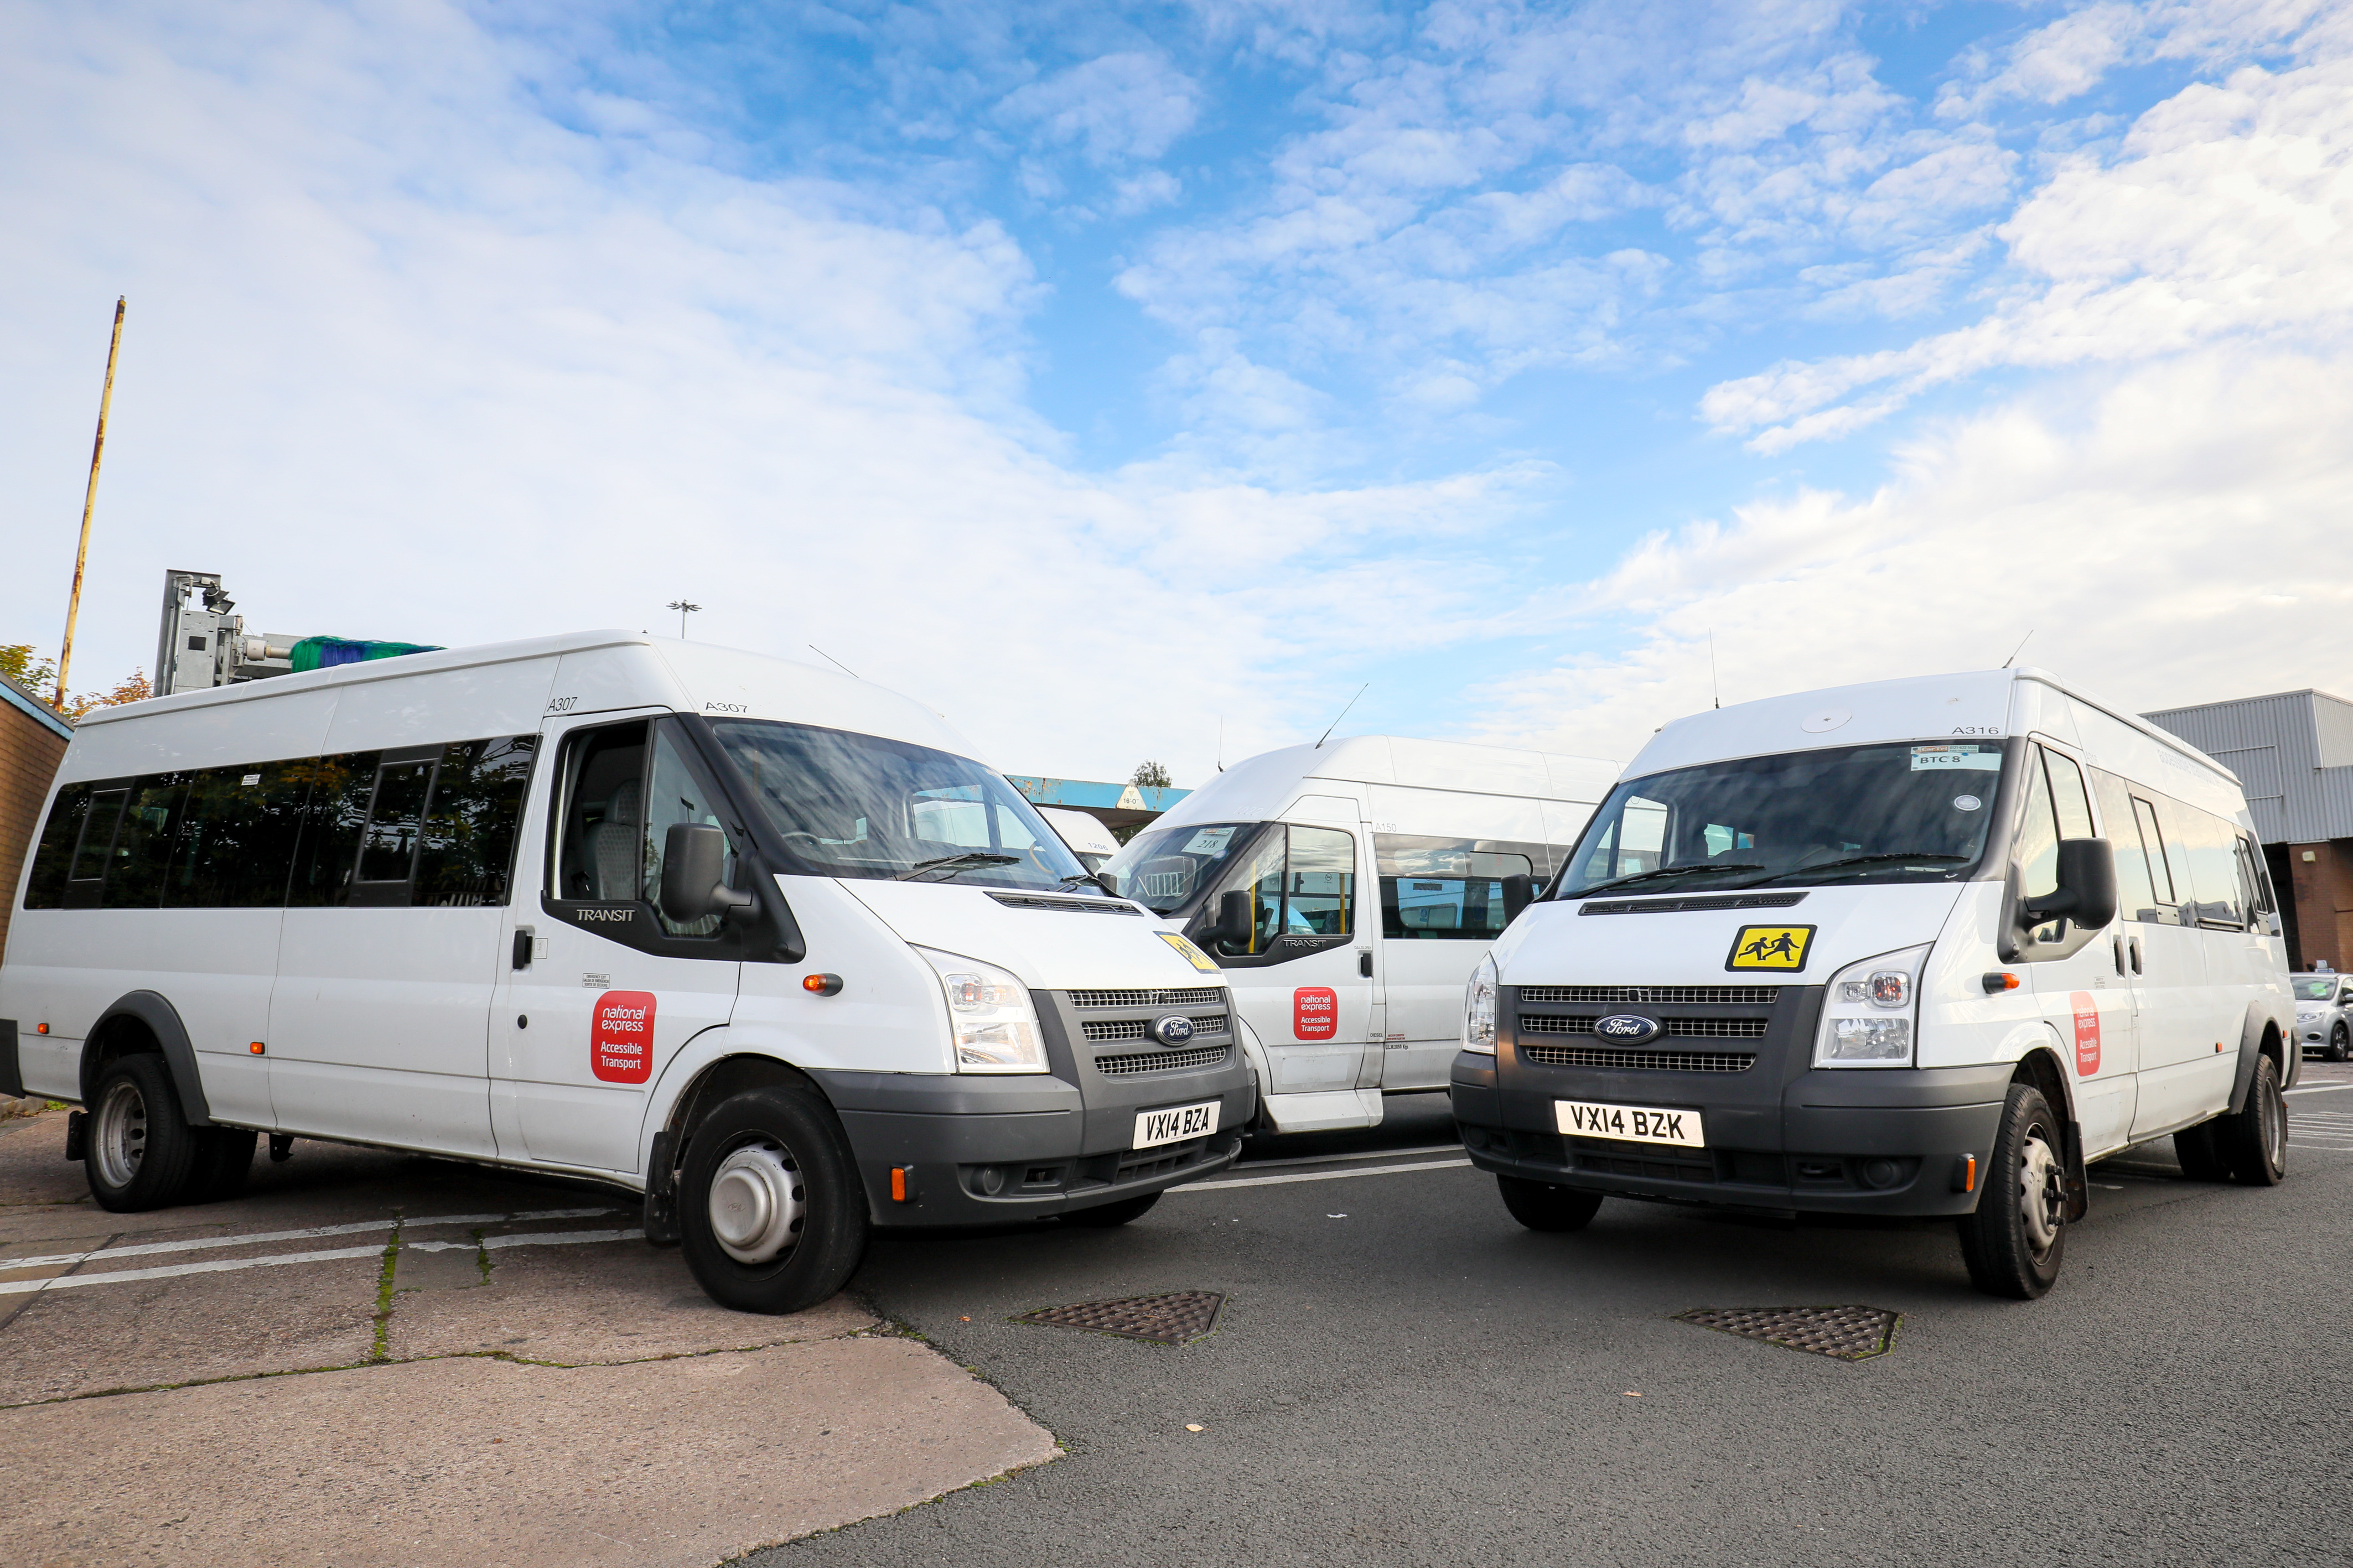 New free shuttle bus service for NHS and social care staff launched in response to coronavirus outbreak